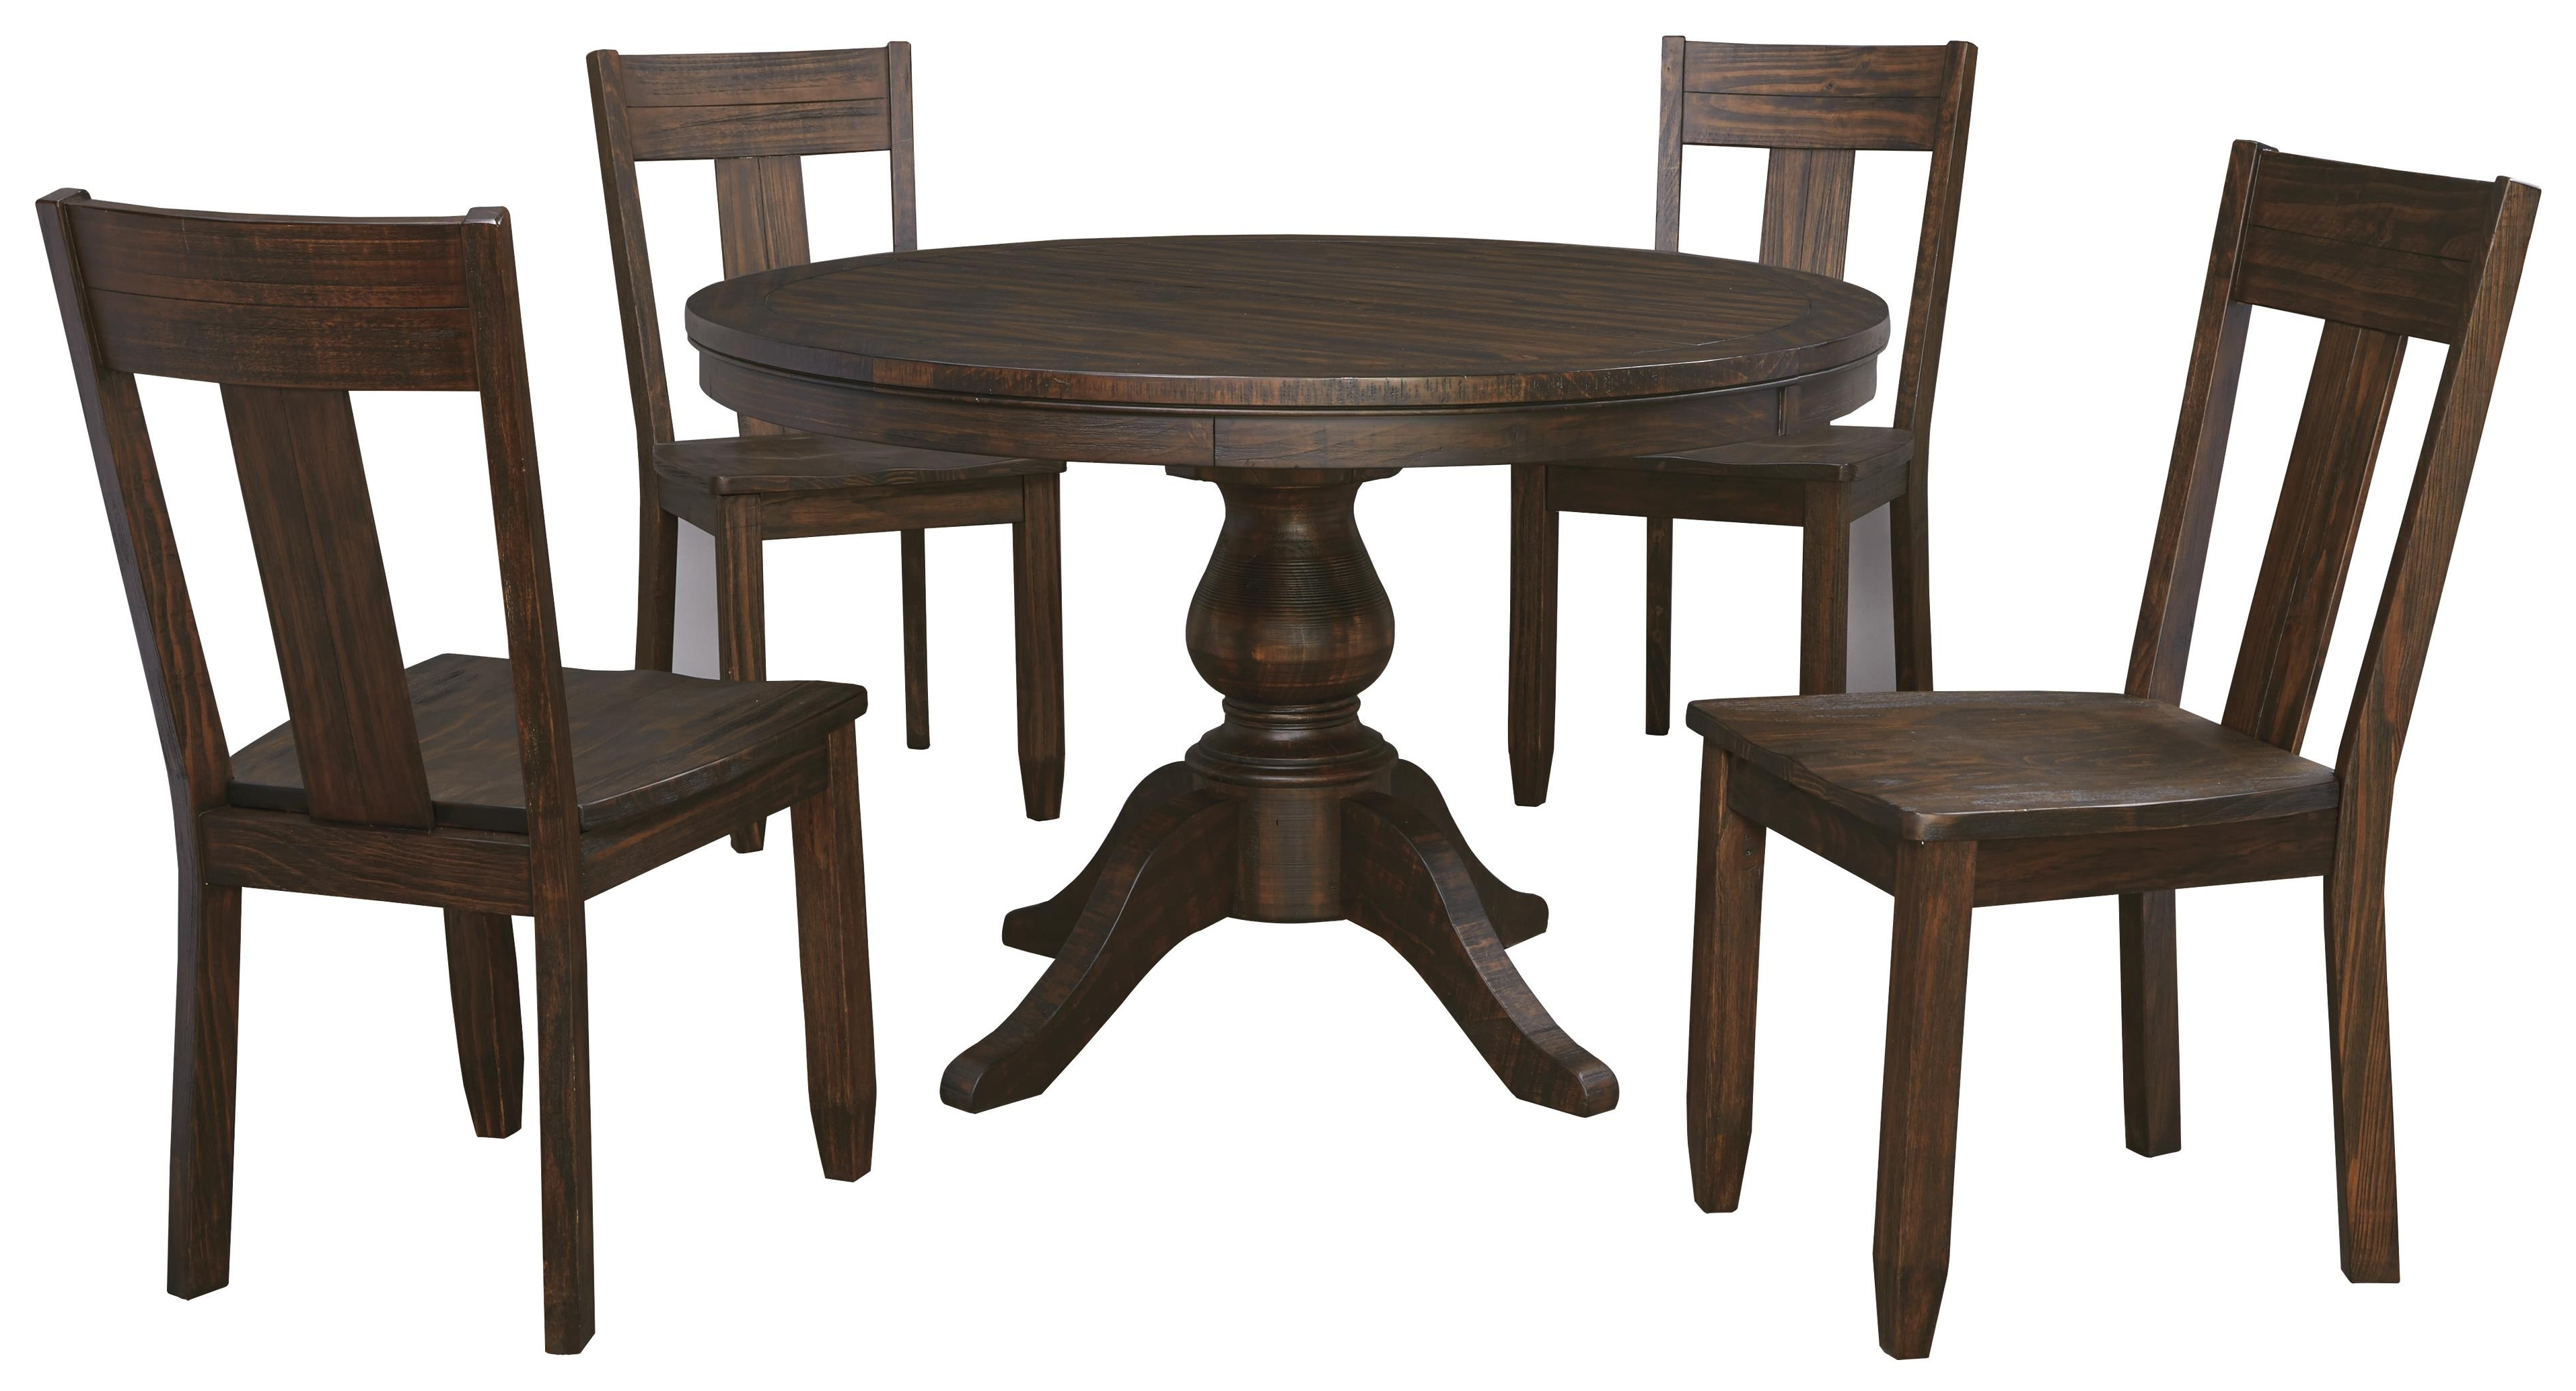 Macie Round Dining Tables Intended For Recent 5 Piece Round Dining Table Set – Castrophotos (View 7 of 25)